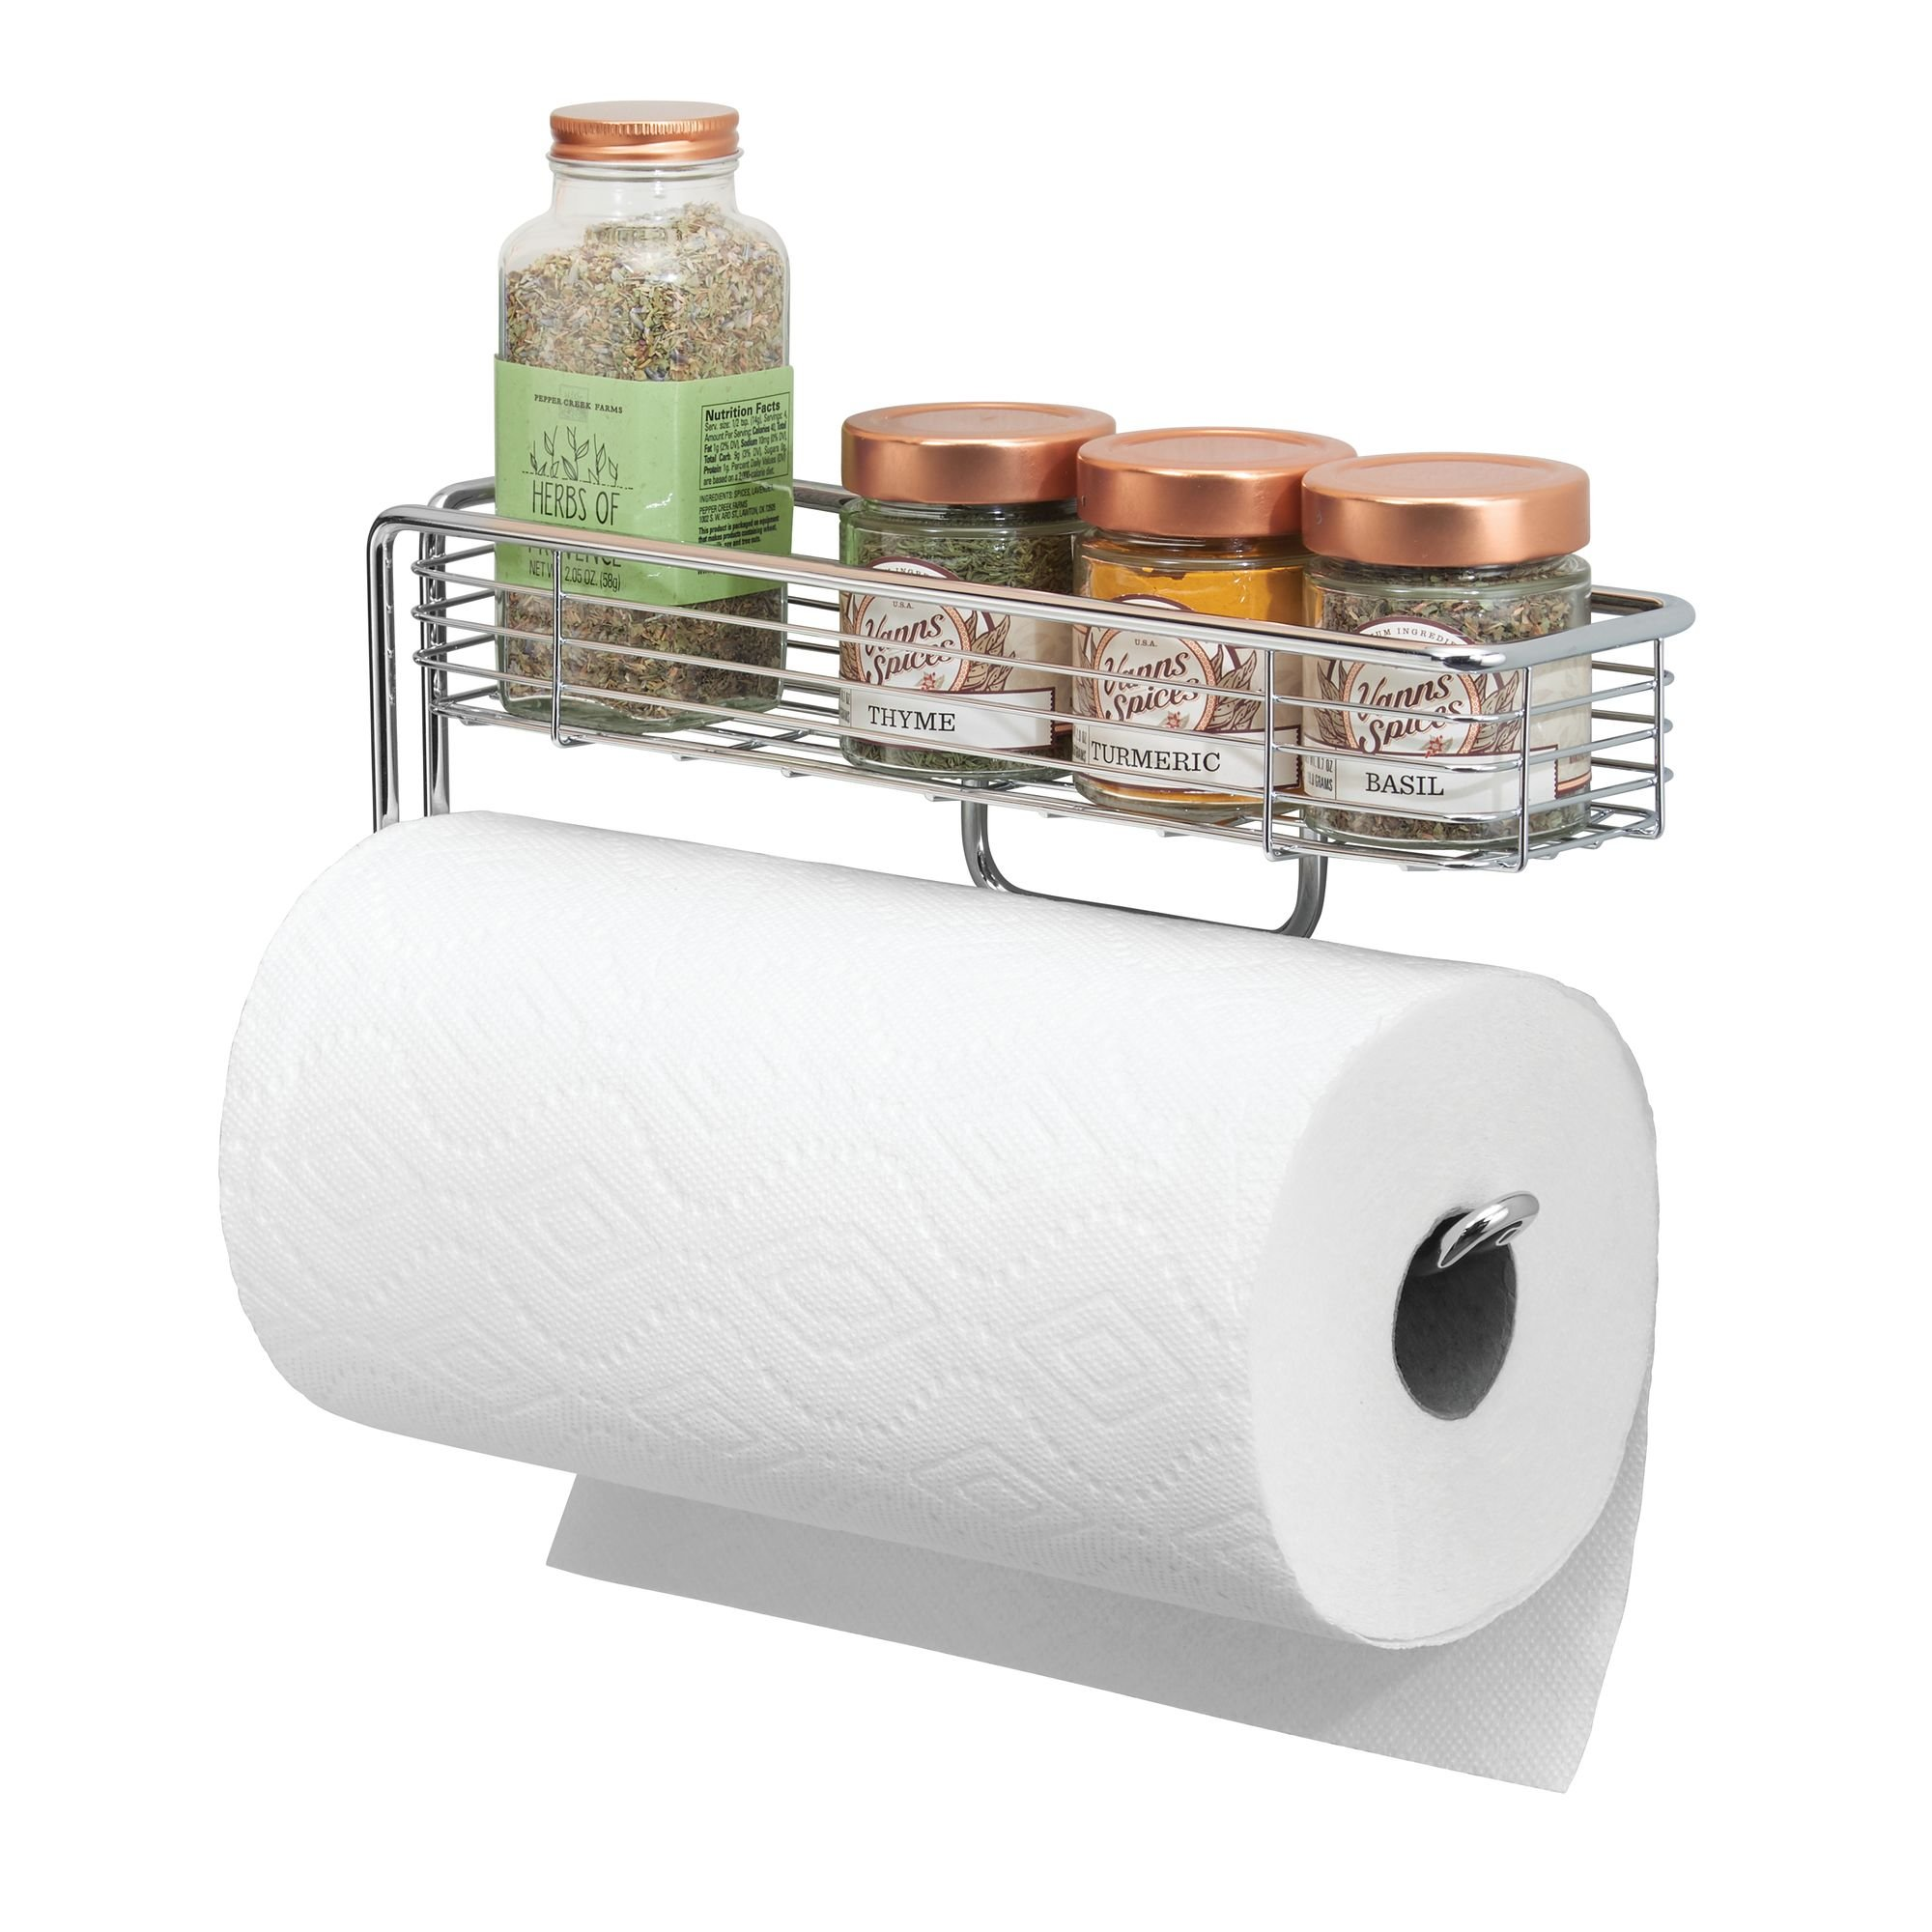 mDesign Wall Mount Paper Towel Holder with Storage Shelf for Kitchen, Pantry, Laundry, Garage Organization - Strong Steel Wire with Chrome Finish by mDesign